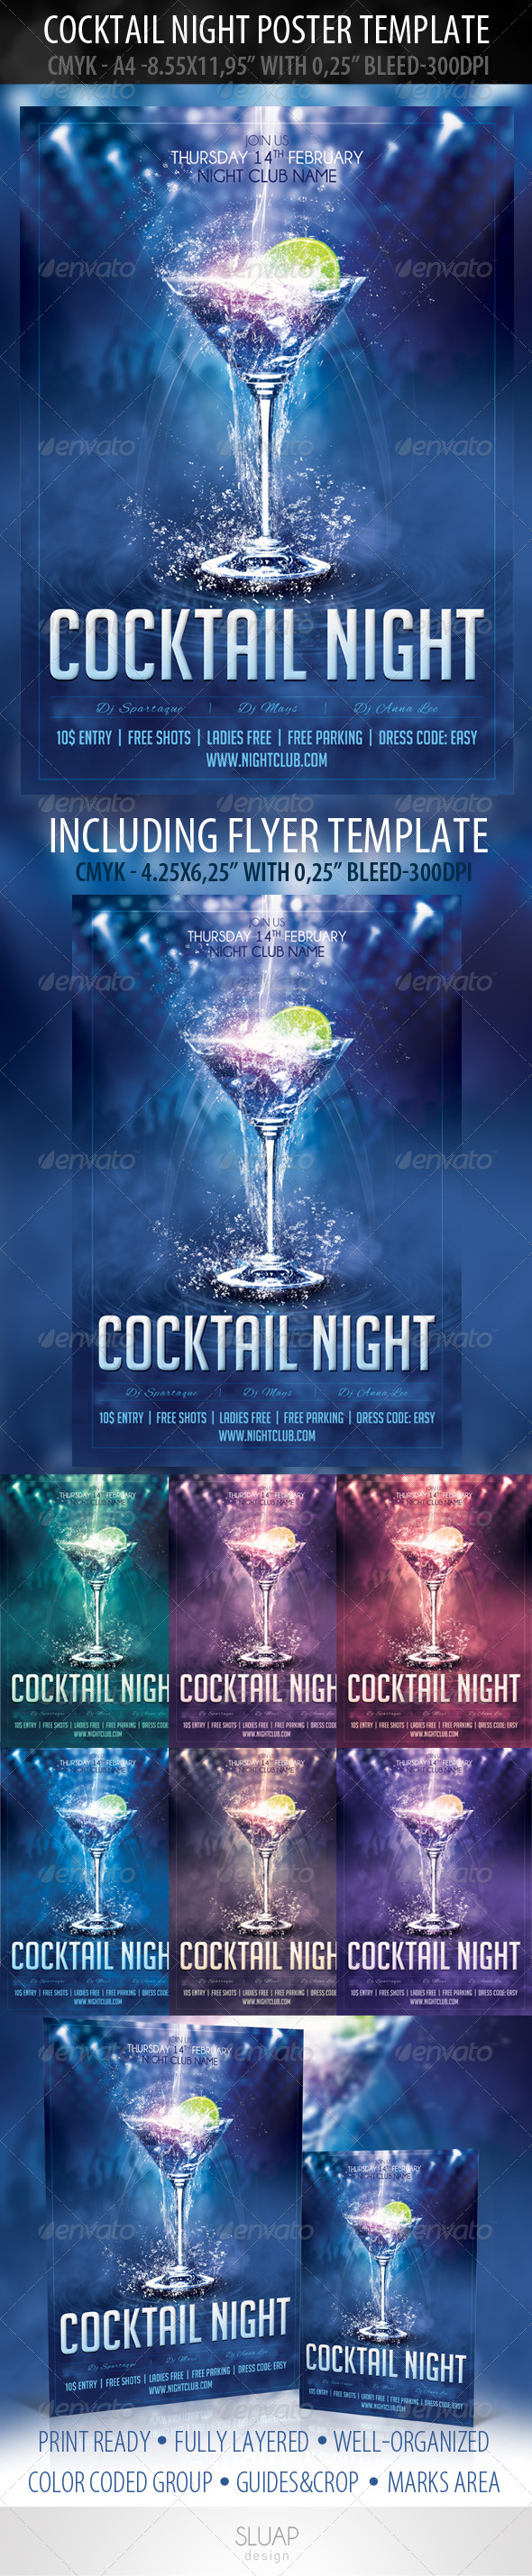 Cocktail Night Poster Template & Cocktail Night Flyer